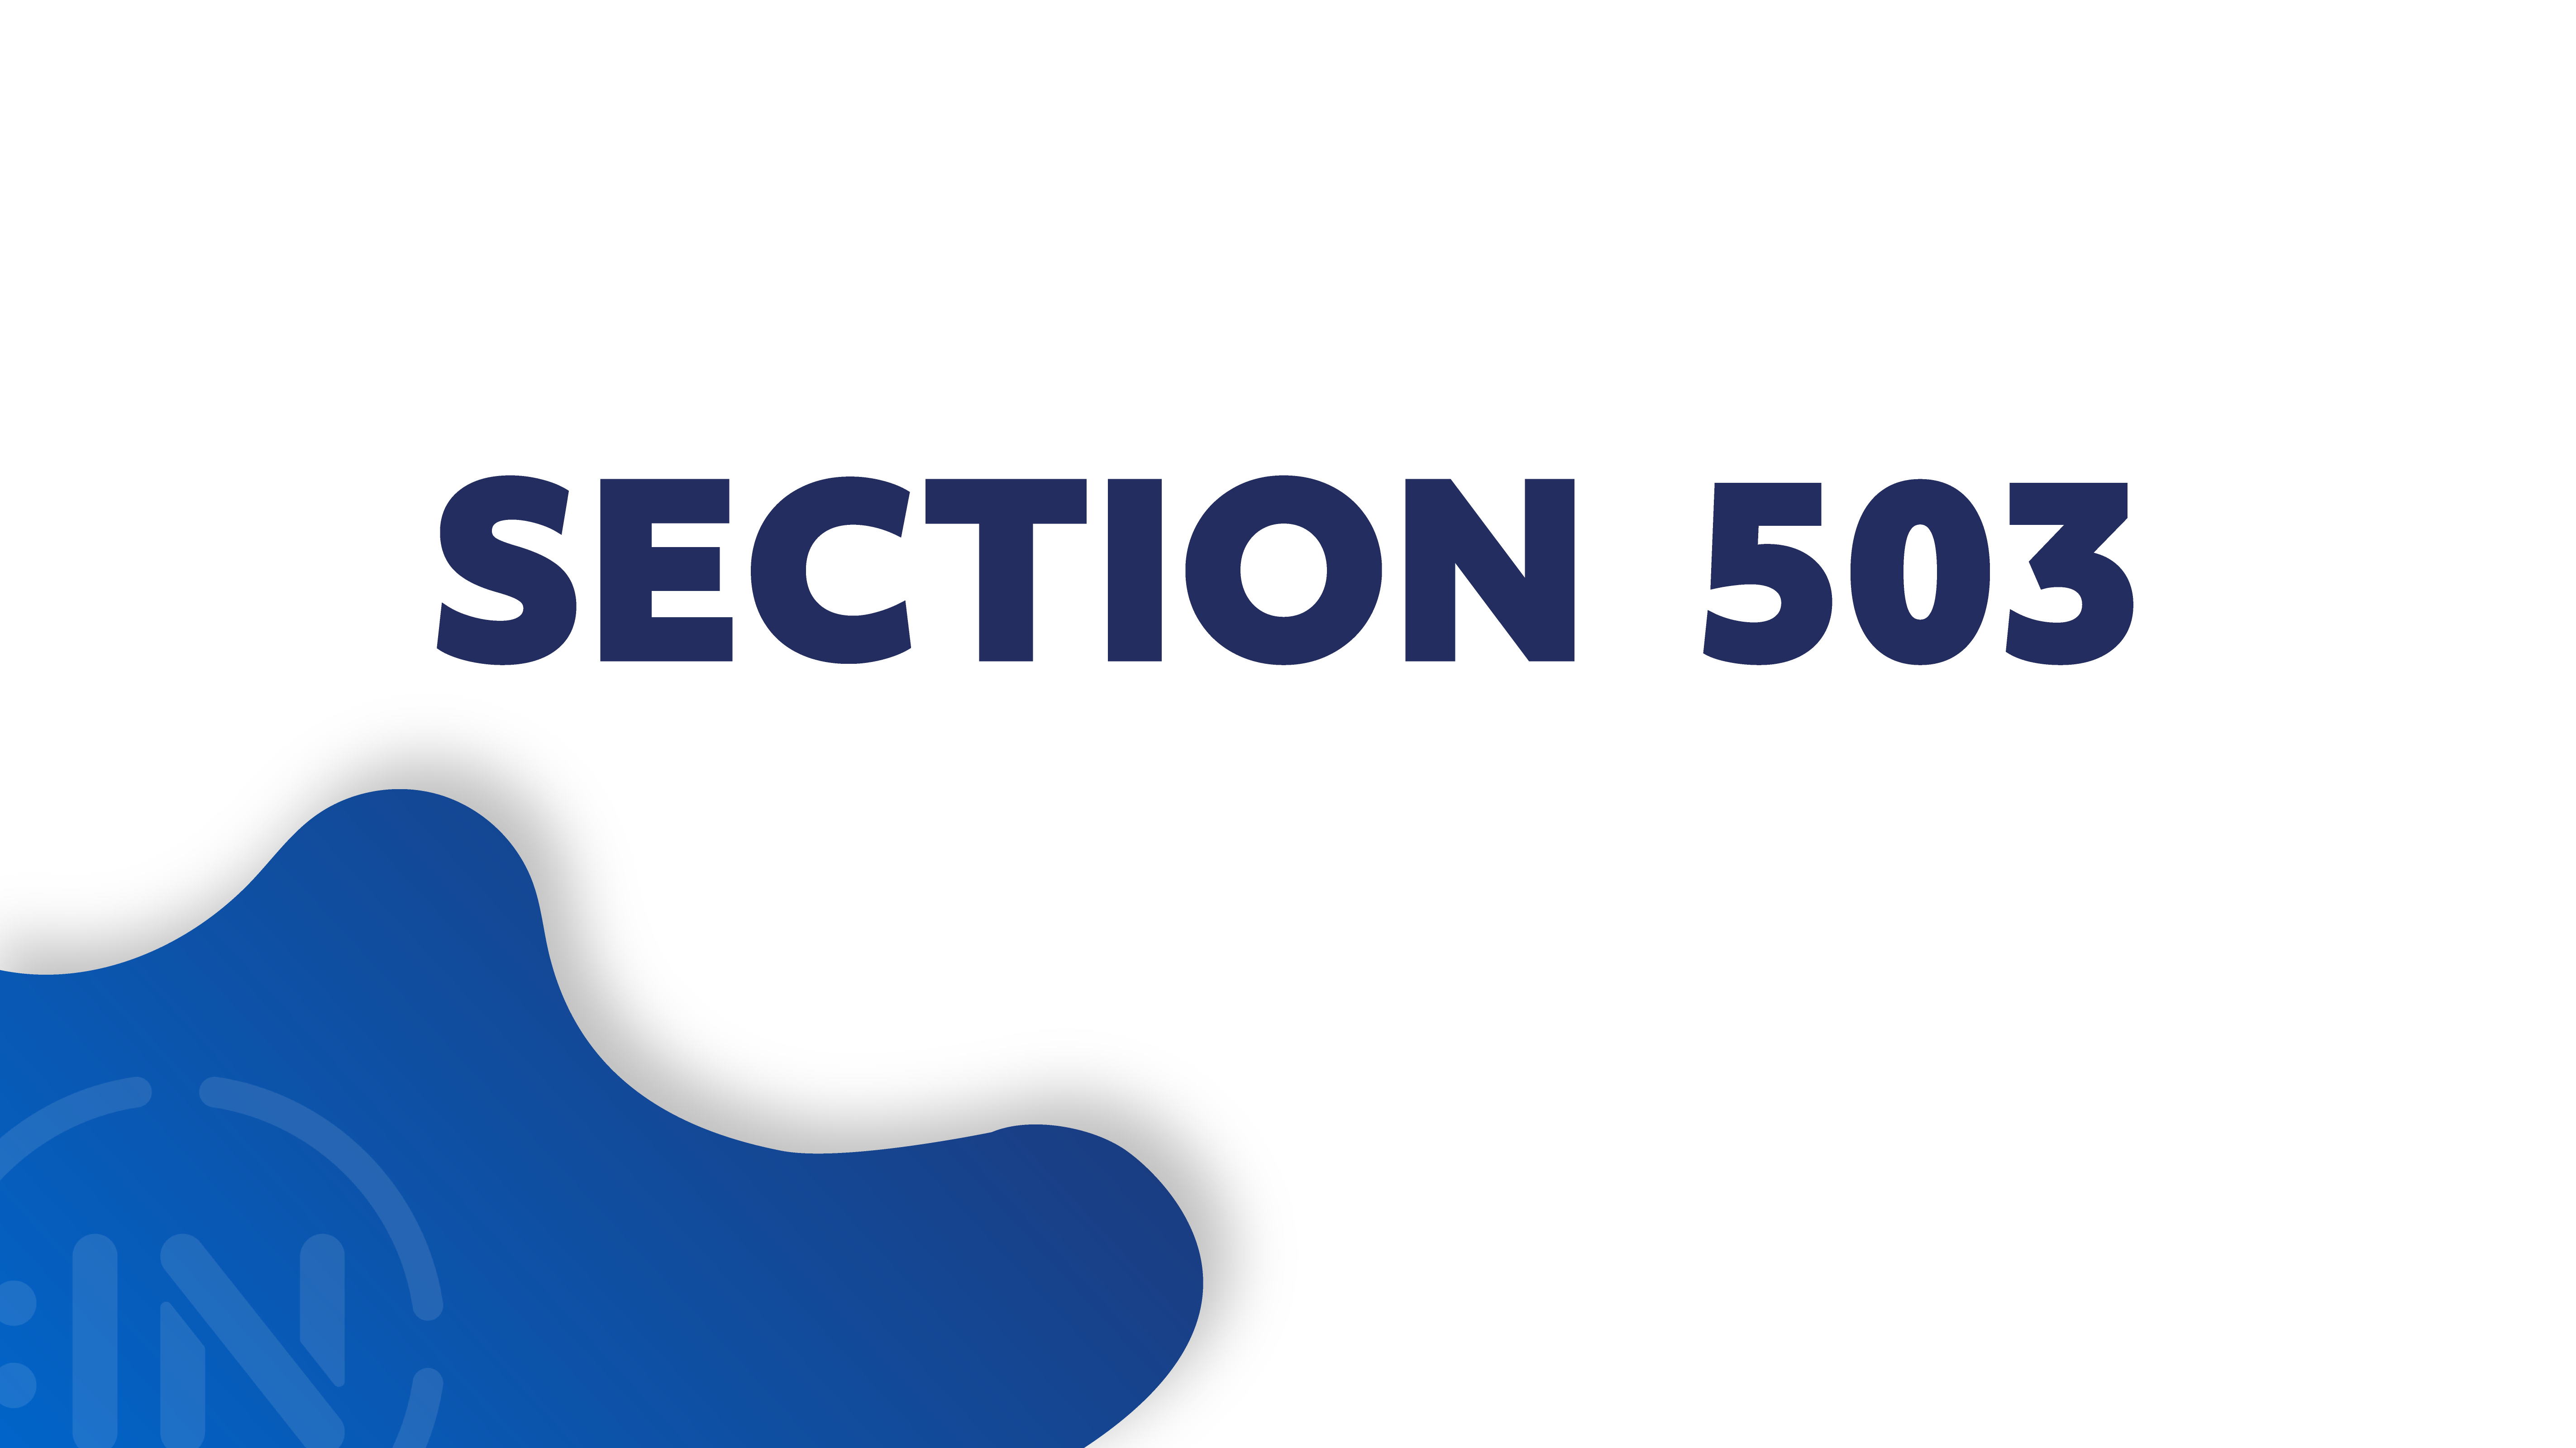 Session related to Section 503